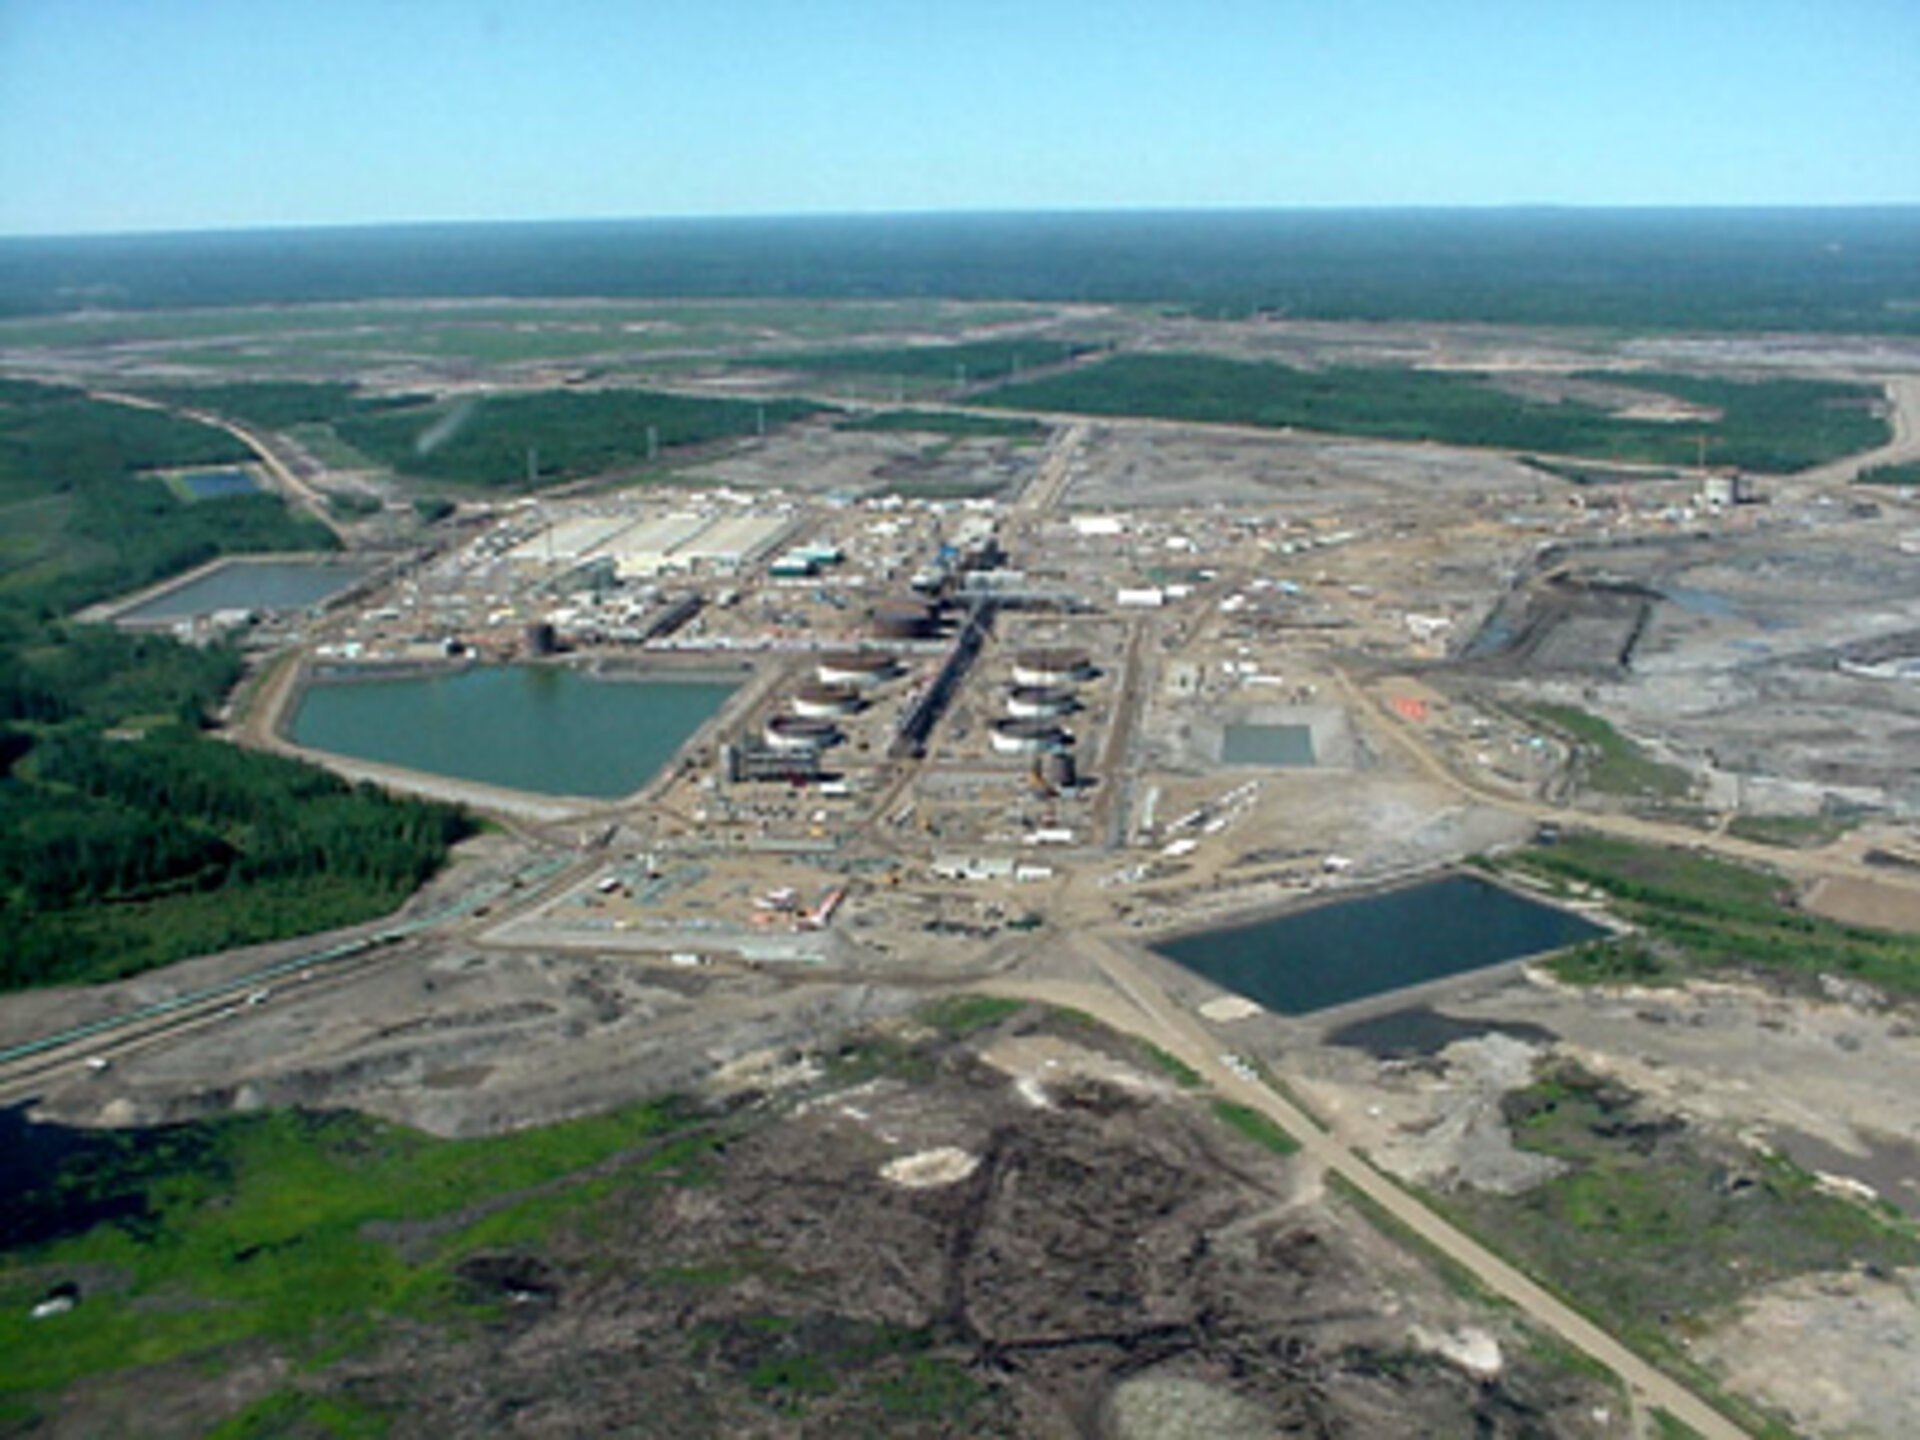 Aerial view of oil sands site